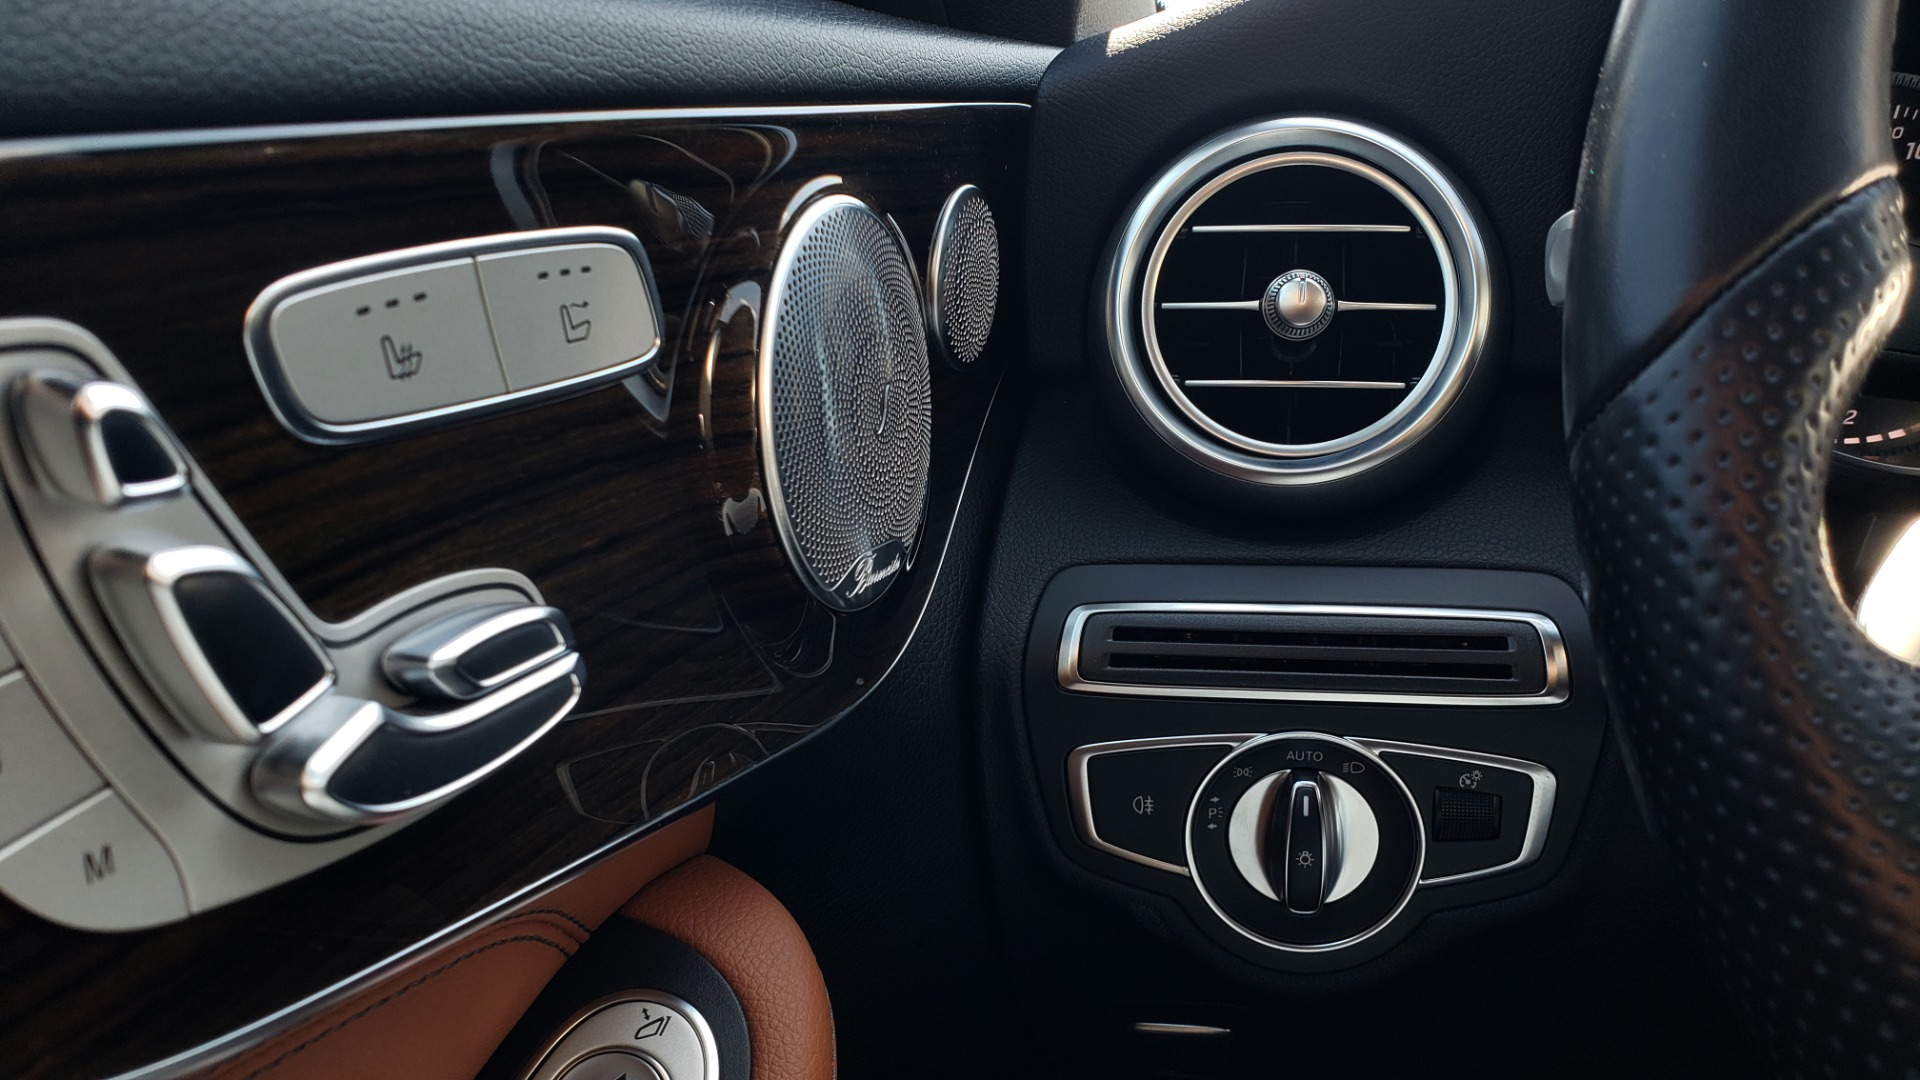 Used 2018 Mercedes-Benz C-CLASS C 300 CABRIOLET PREMIUM / AWD / BURMESTER SND / APPLE / REARVIEW for sale $44,995 at Formula Imports in Charlotte NC 28227 86